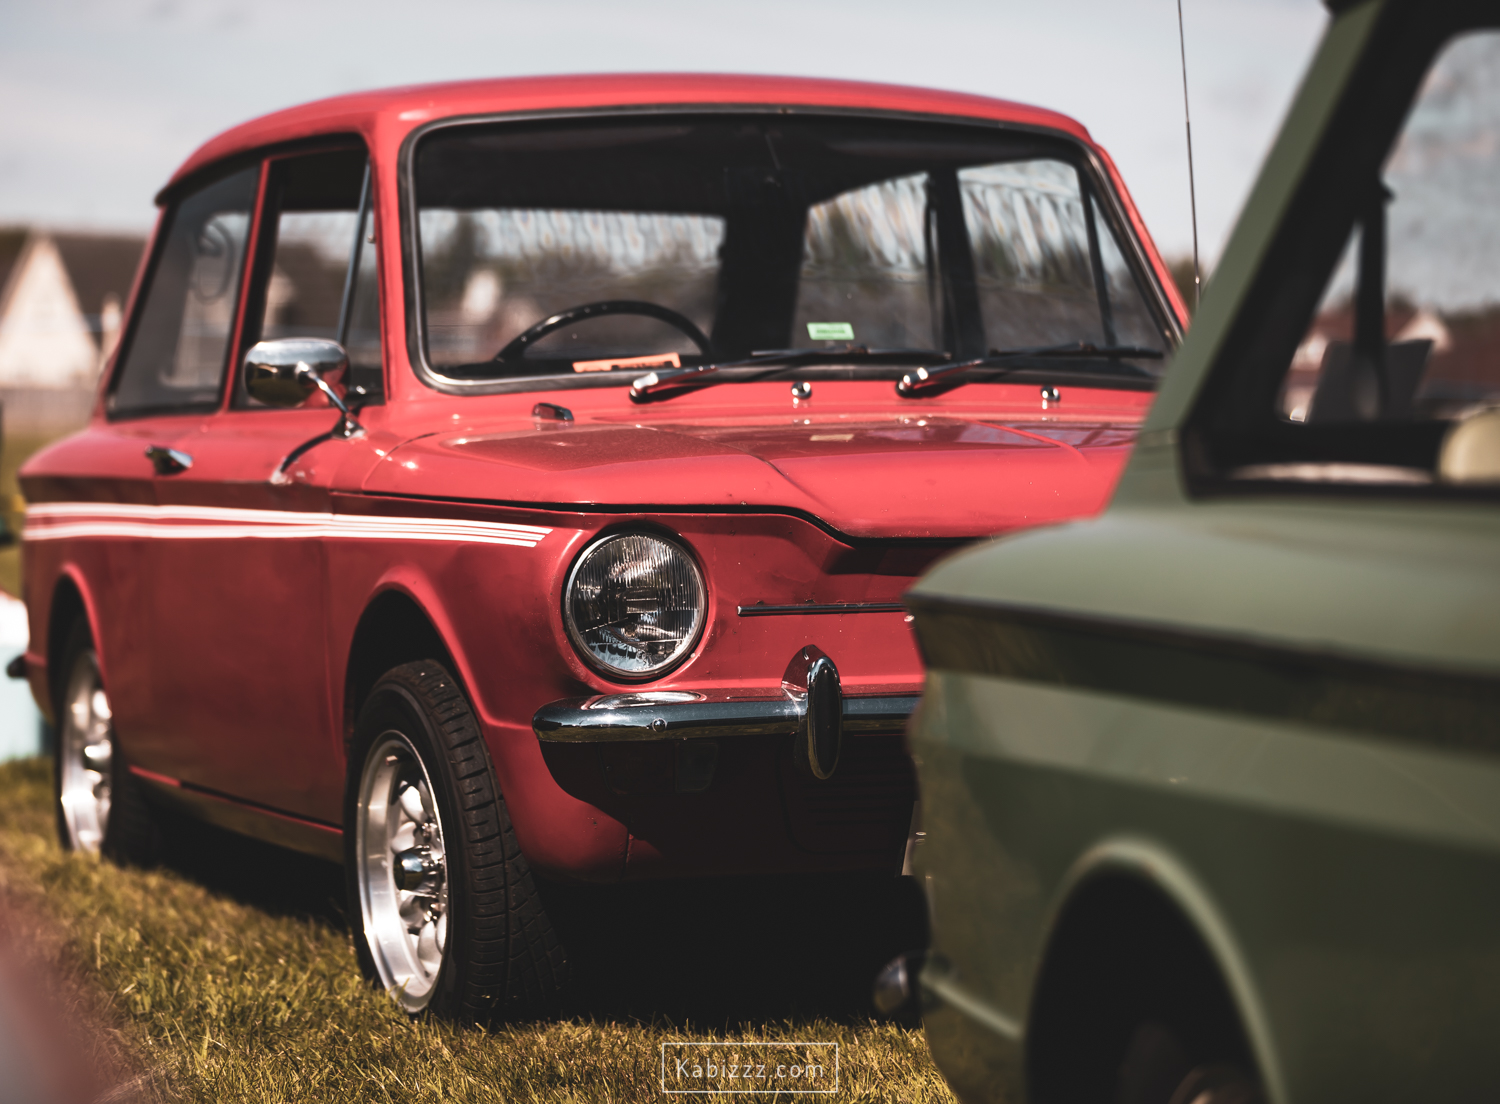 Kabizzz_Photography_Stirling_District_Classic _cars-31.jpg